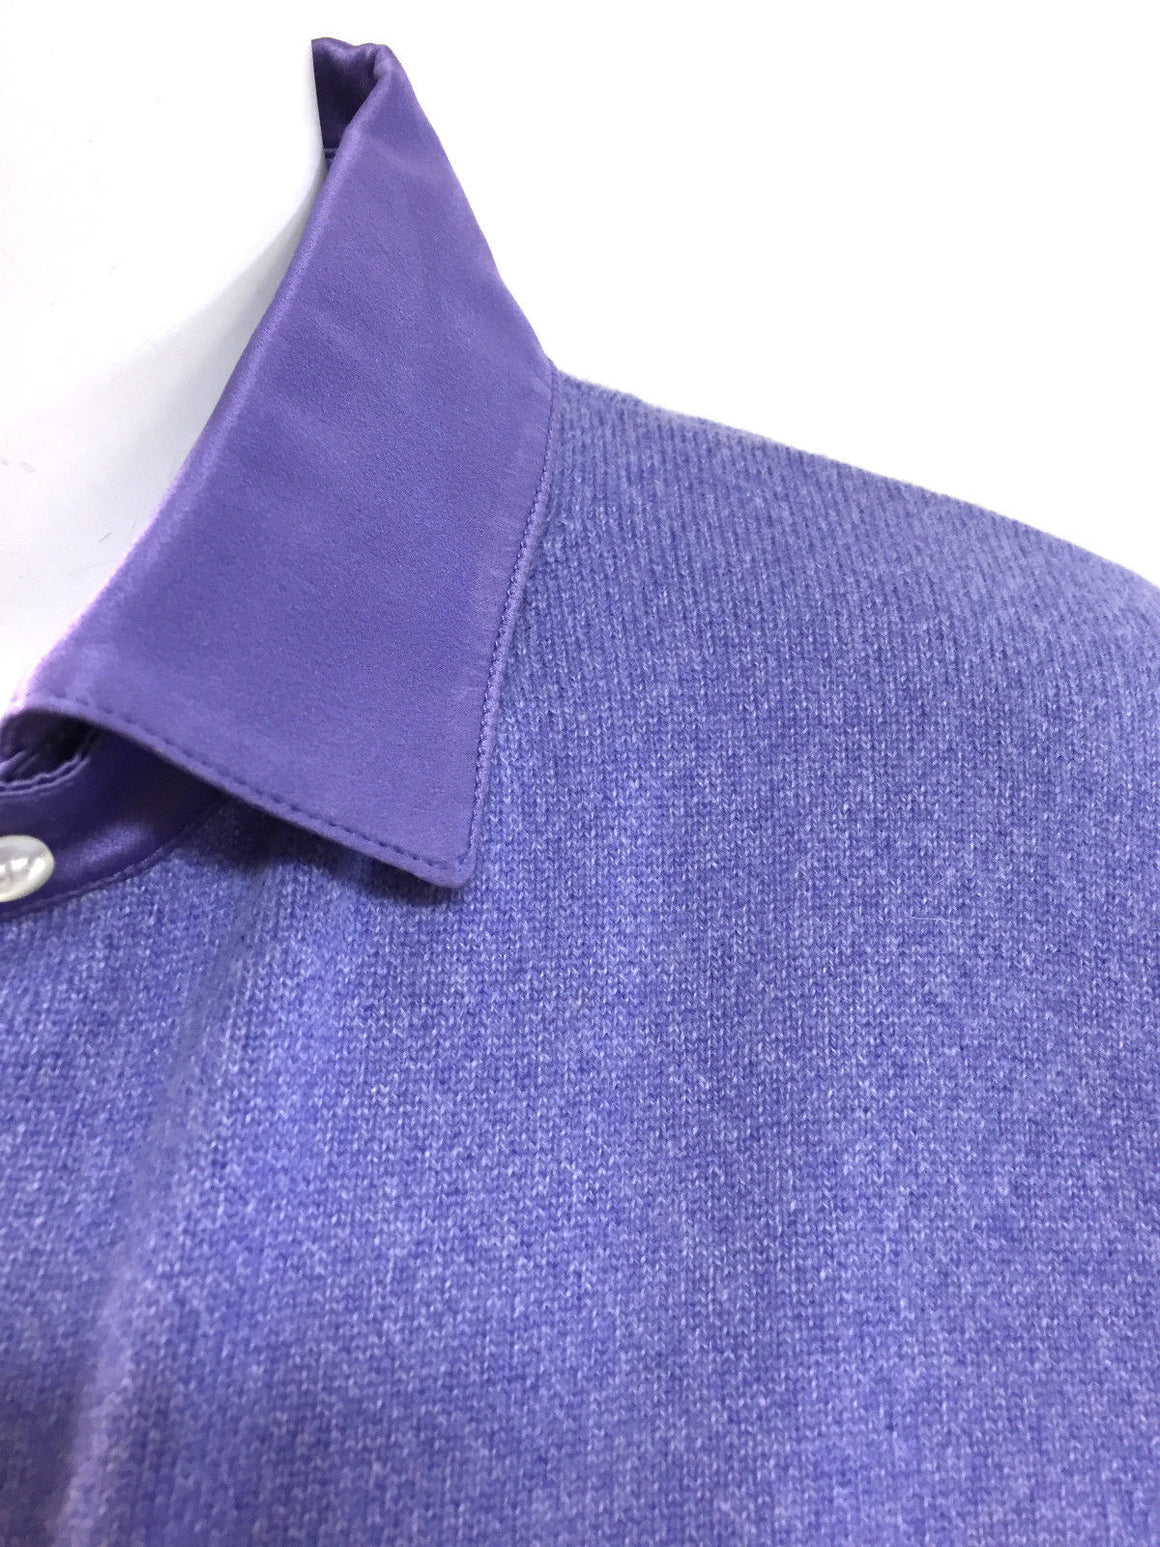 bisbiz.com RICHARD GRAND Lavender-Purple Silk Satin Collar Cashmere Cardigan Sweater Size: M - Bis Luxury Resale